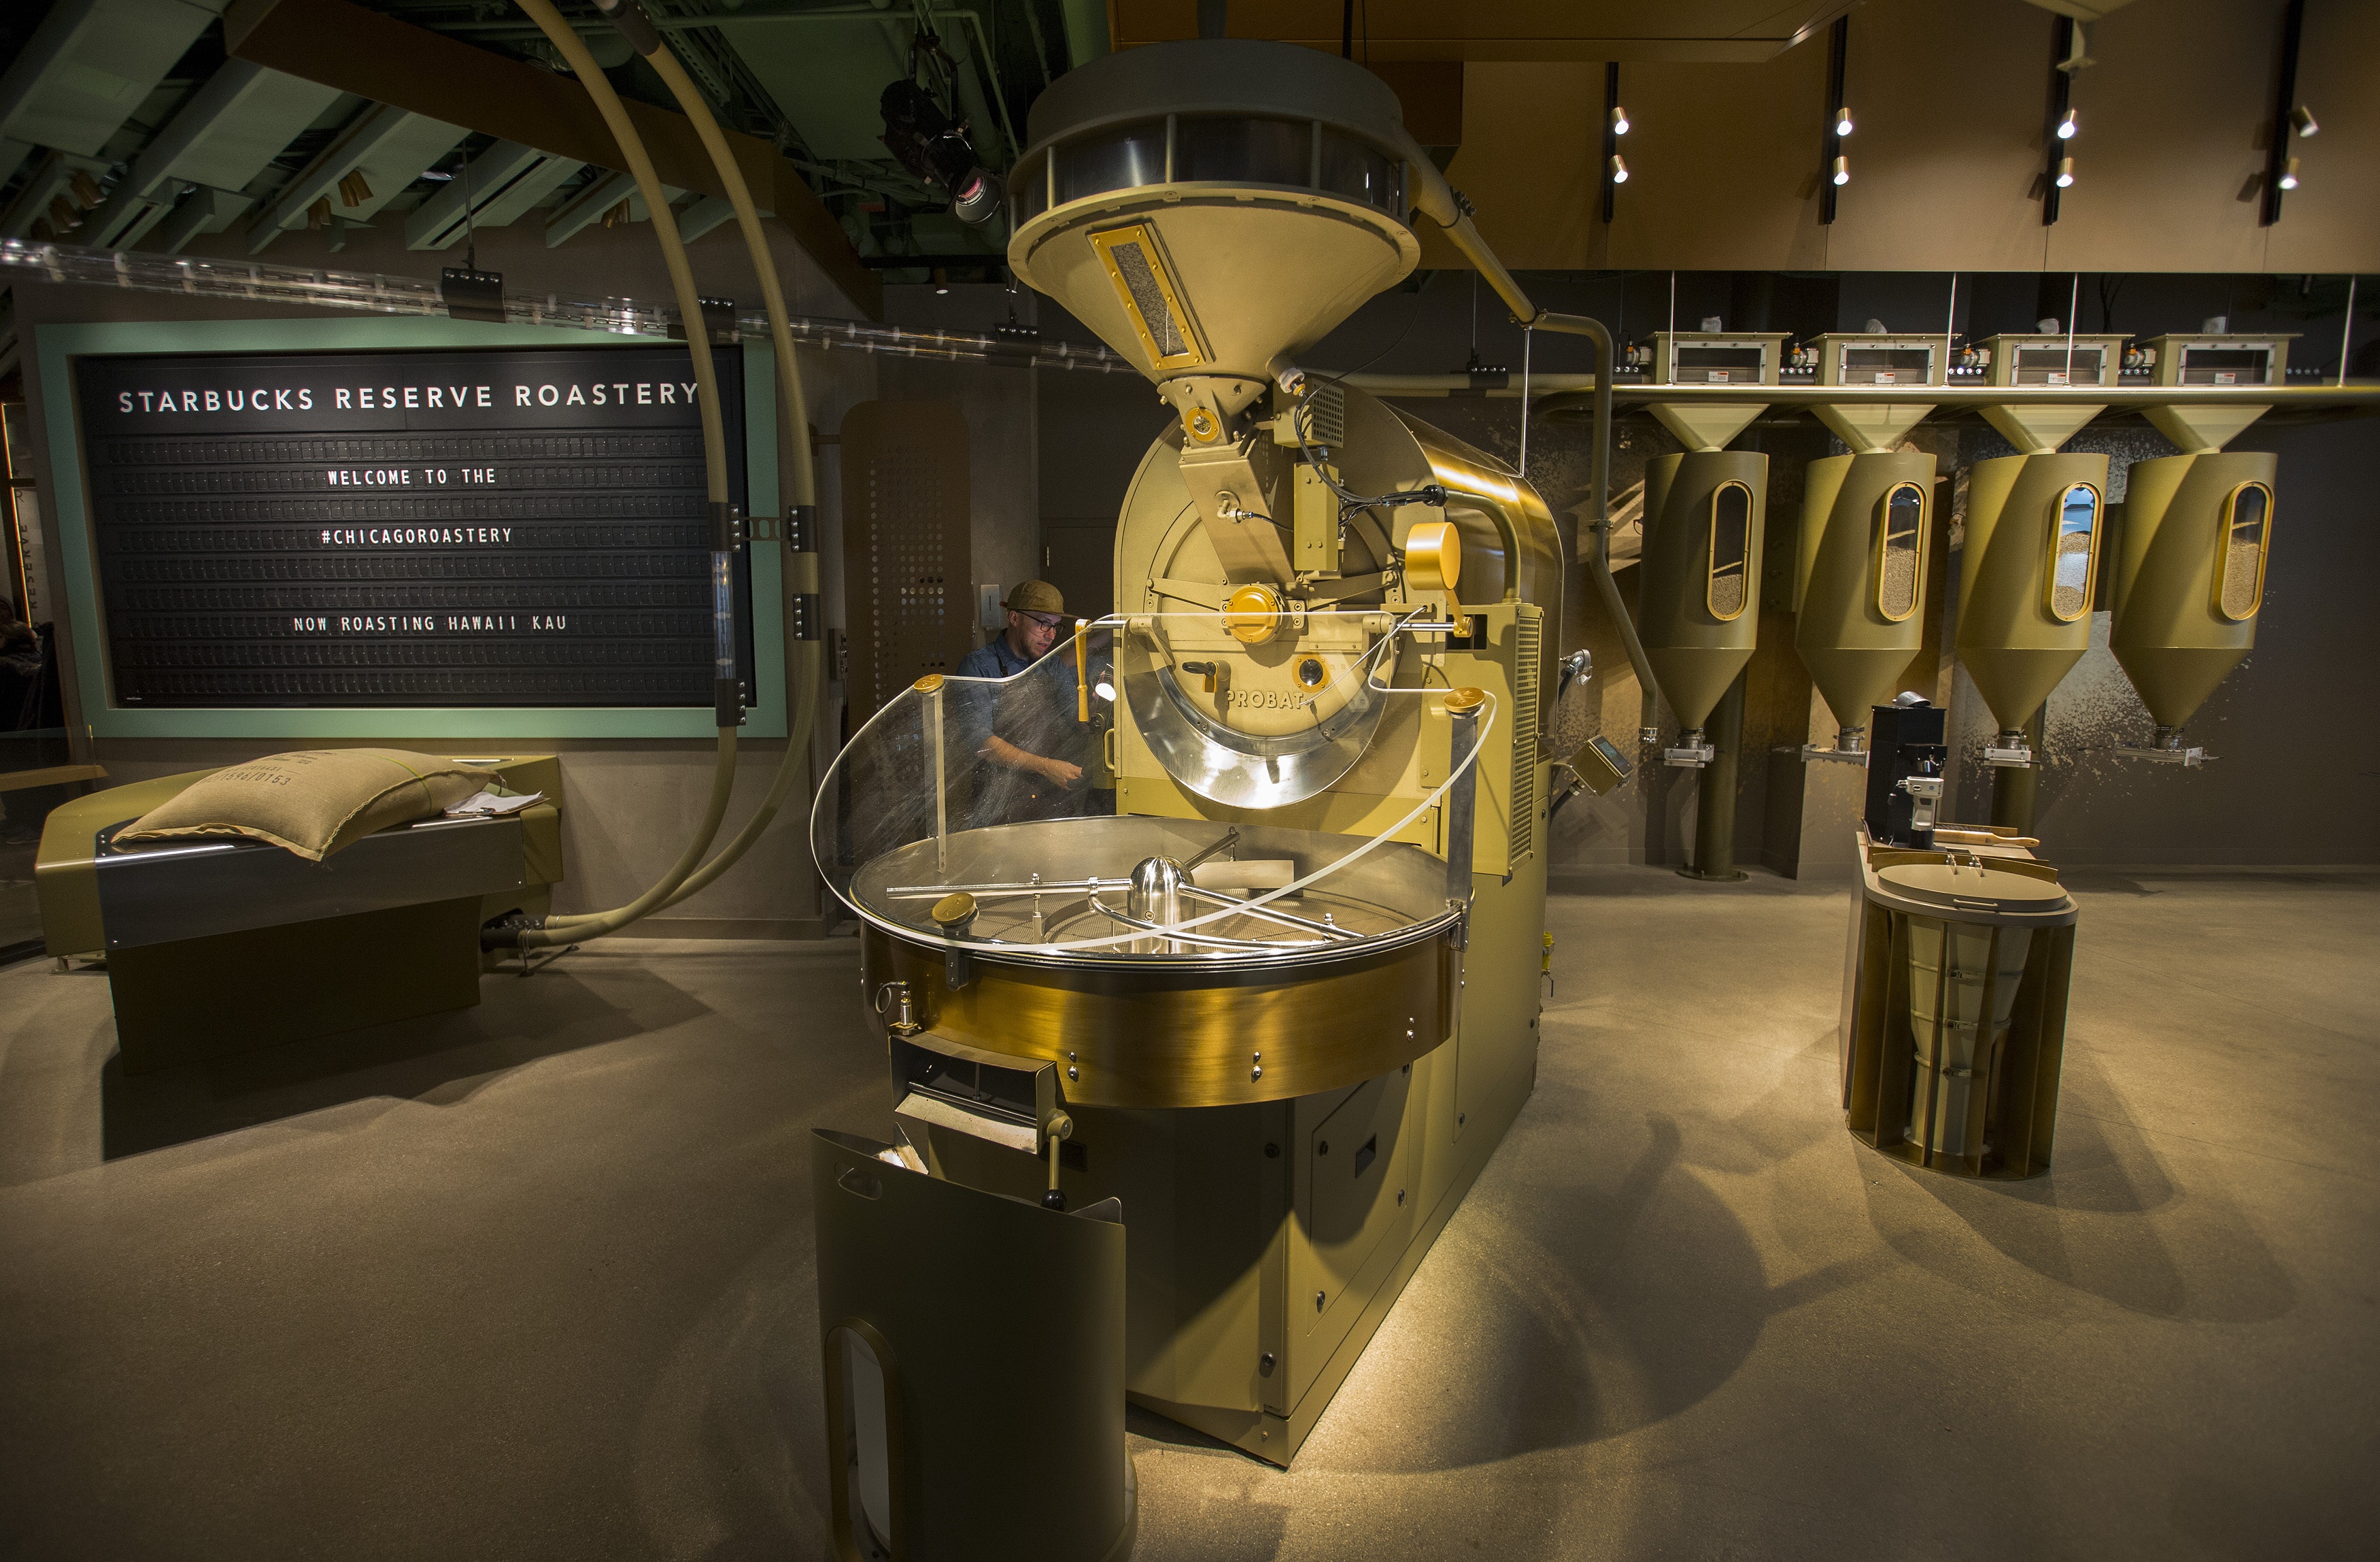 A man roasting coffee beans inside the world's largest Starbucks.